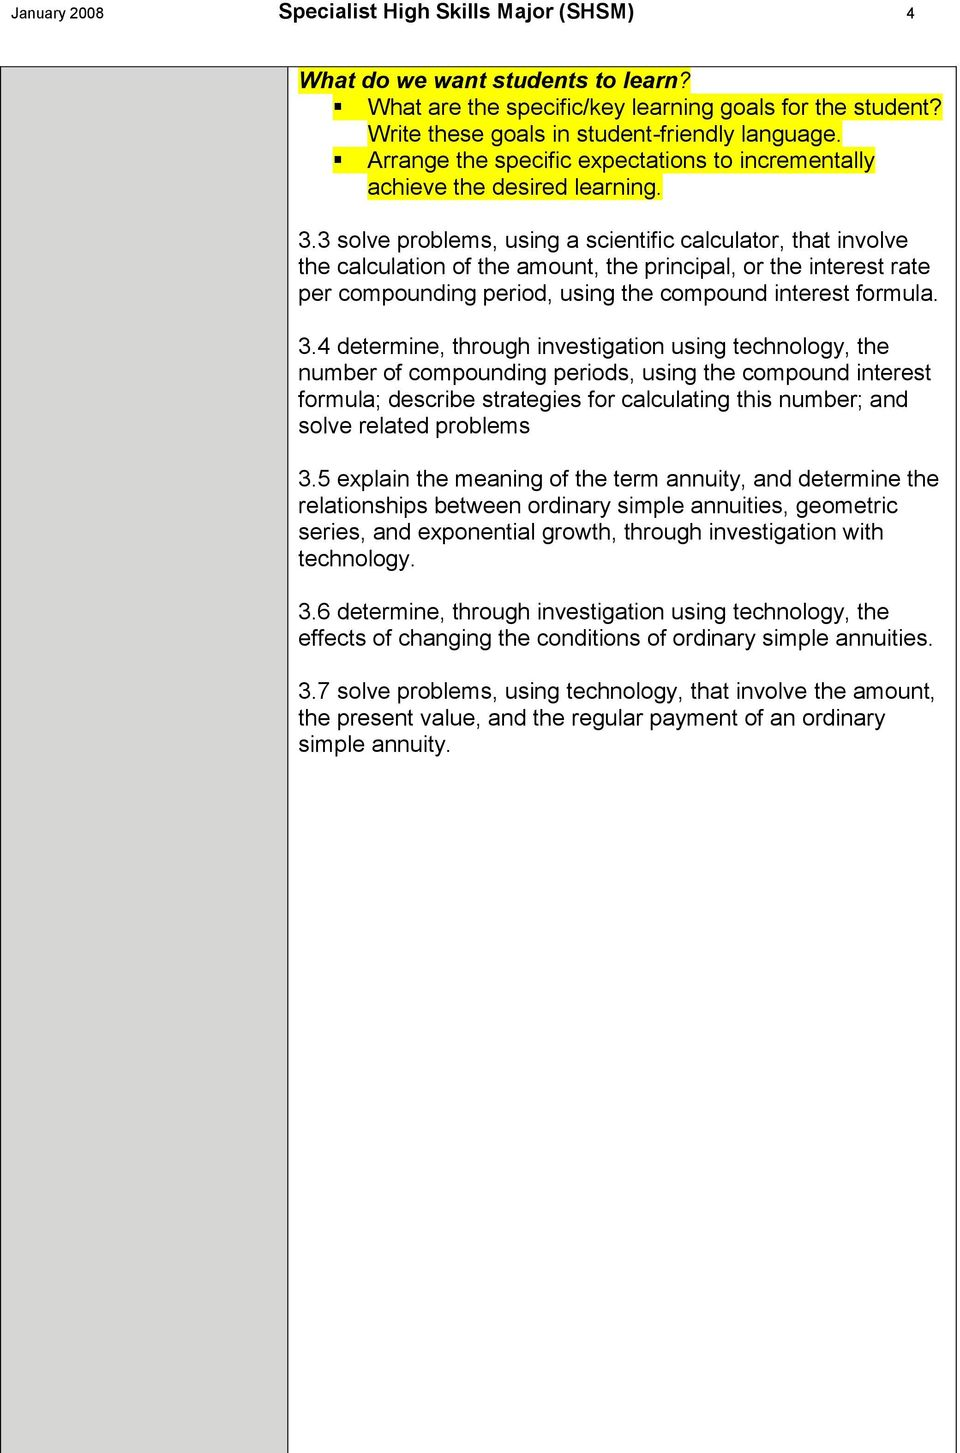 Contextualized Learning Activities (CLAs) - PDF